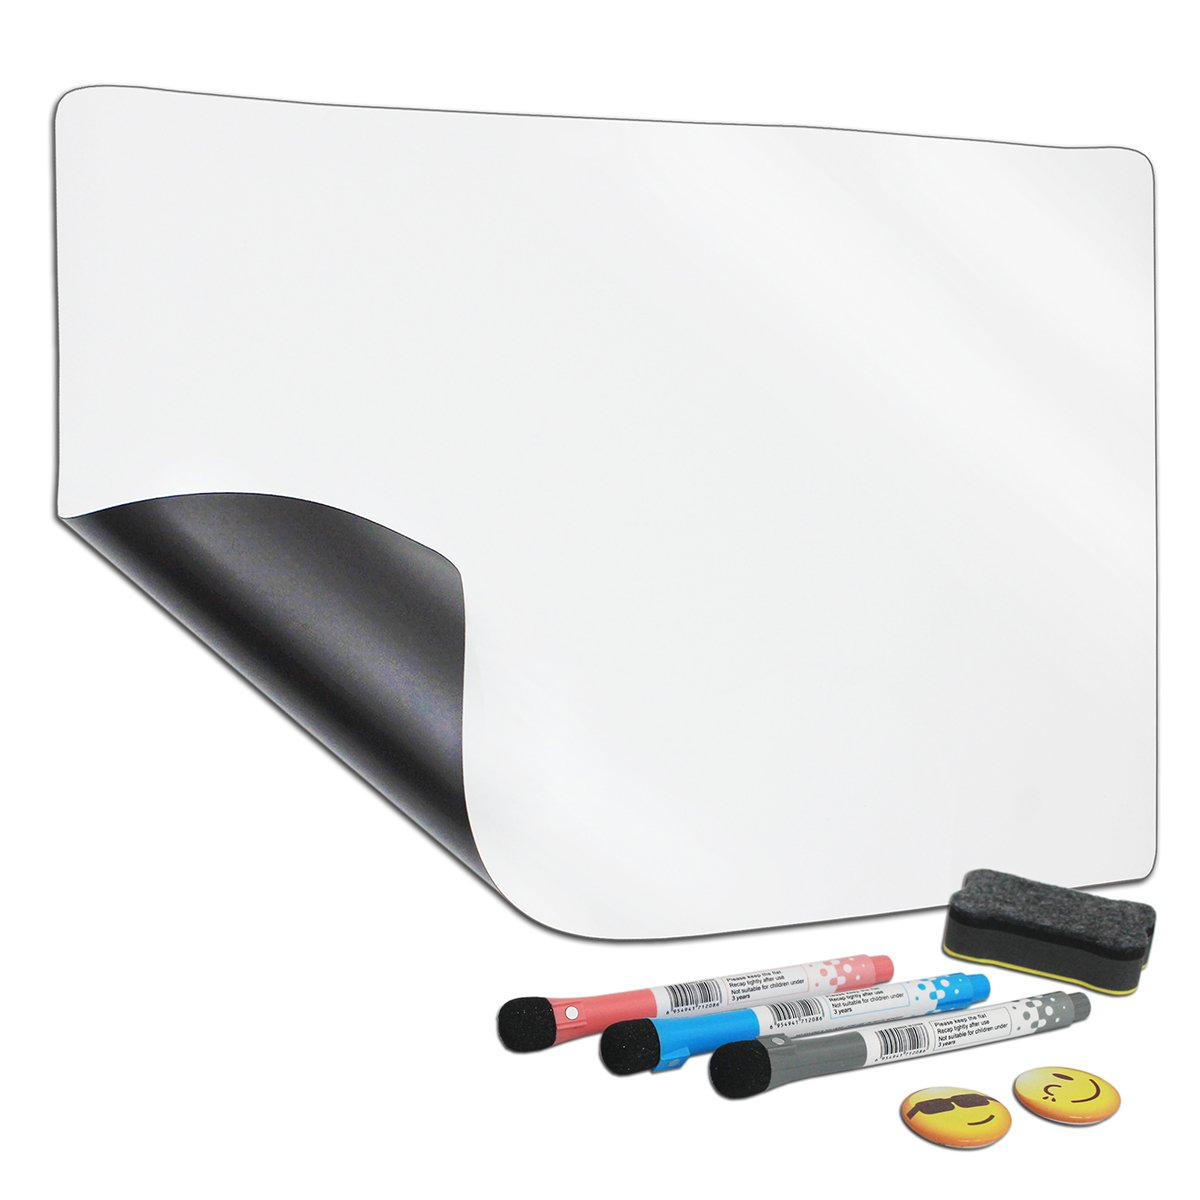 NEFBENLI A4 Soft Whiteboard 11.8''X 8.3'' Fridge Magnet Dry-Erase Board Flexible PET Film Magnetic Message Board Refrigerator Notes,Includes 1 Board, 2 Magnets, and 3 Marker,1 Eraser (A4:11.8''X 8.3'')